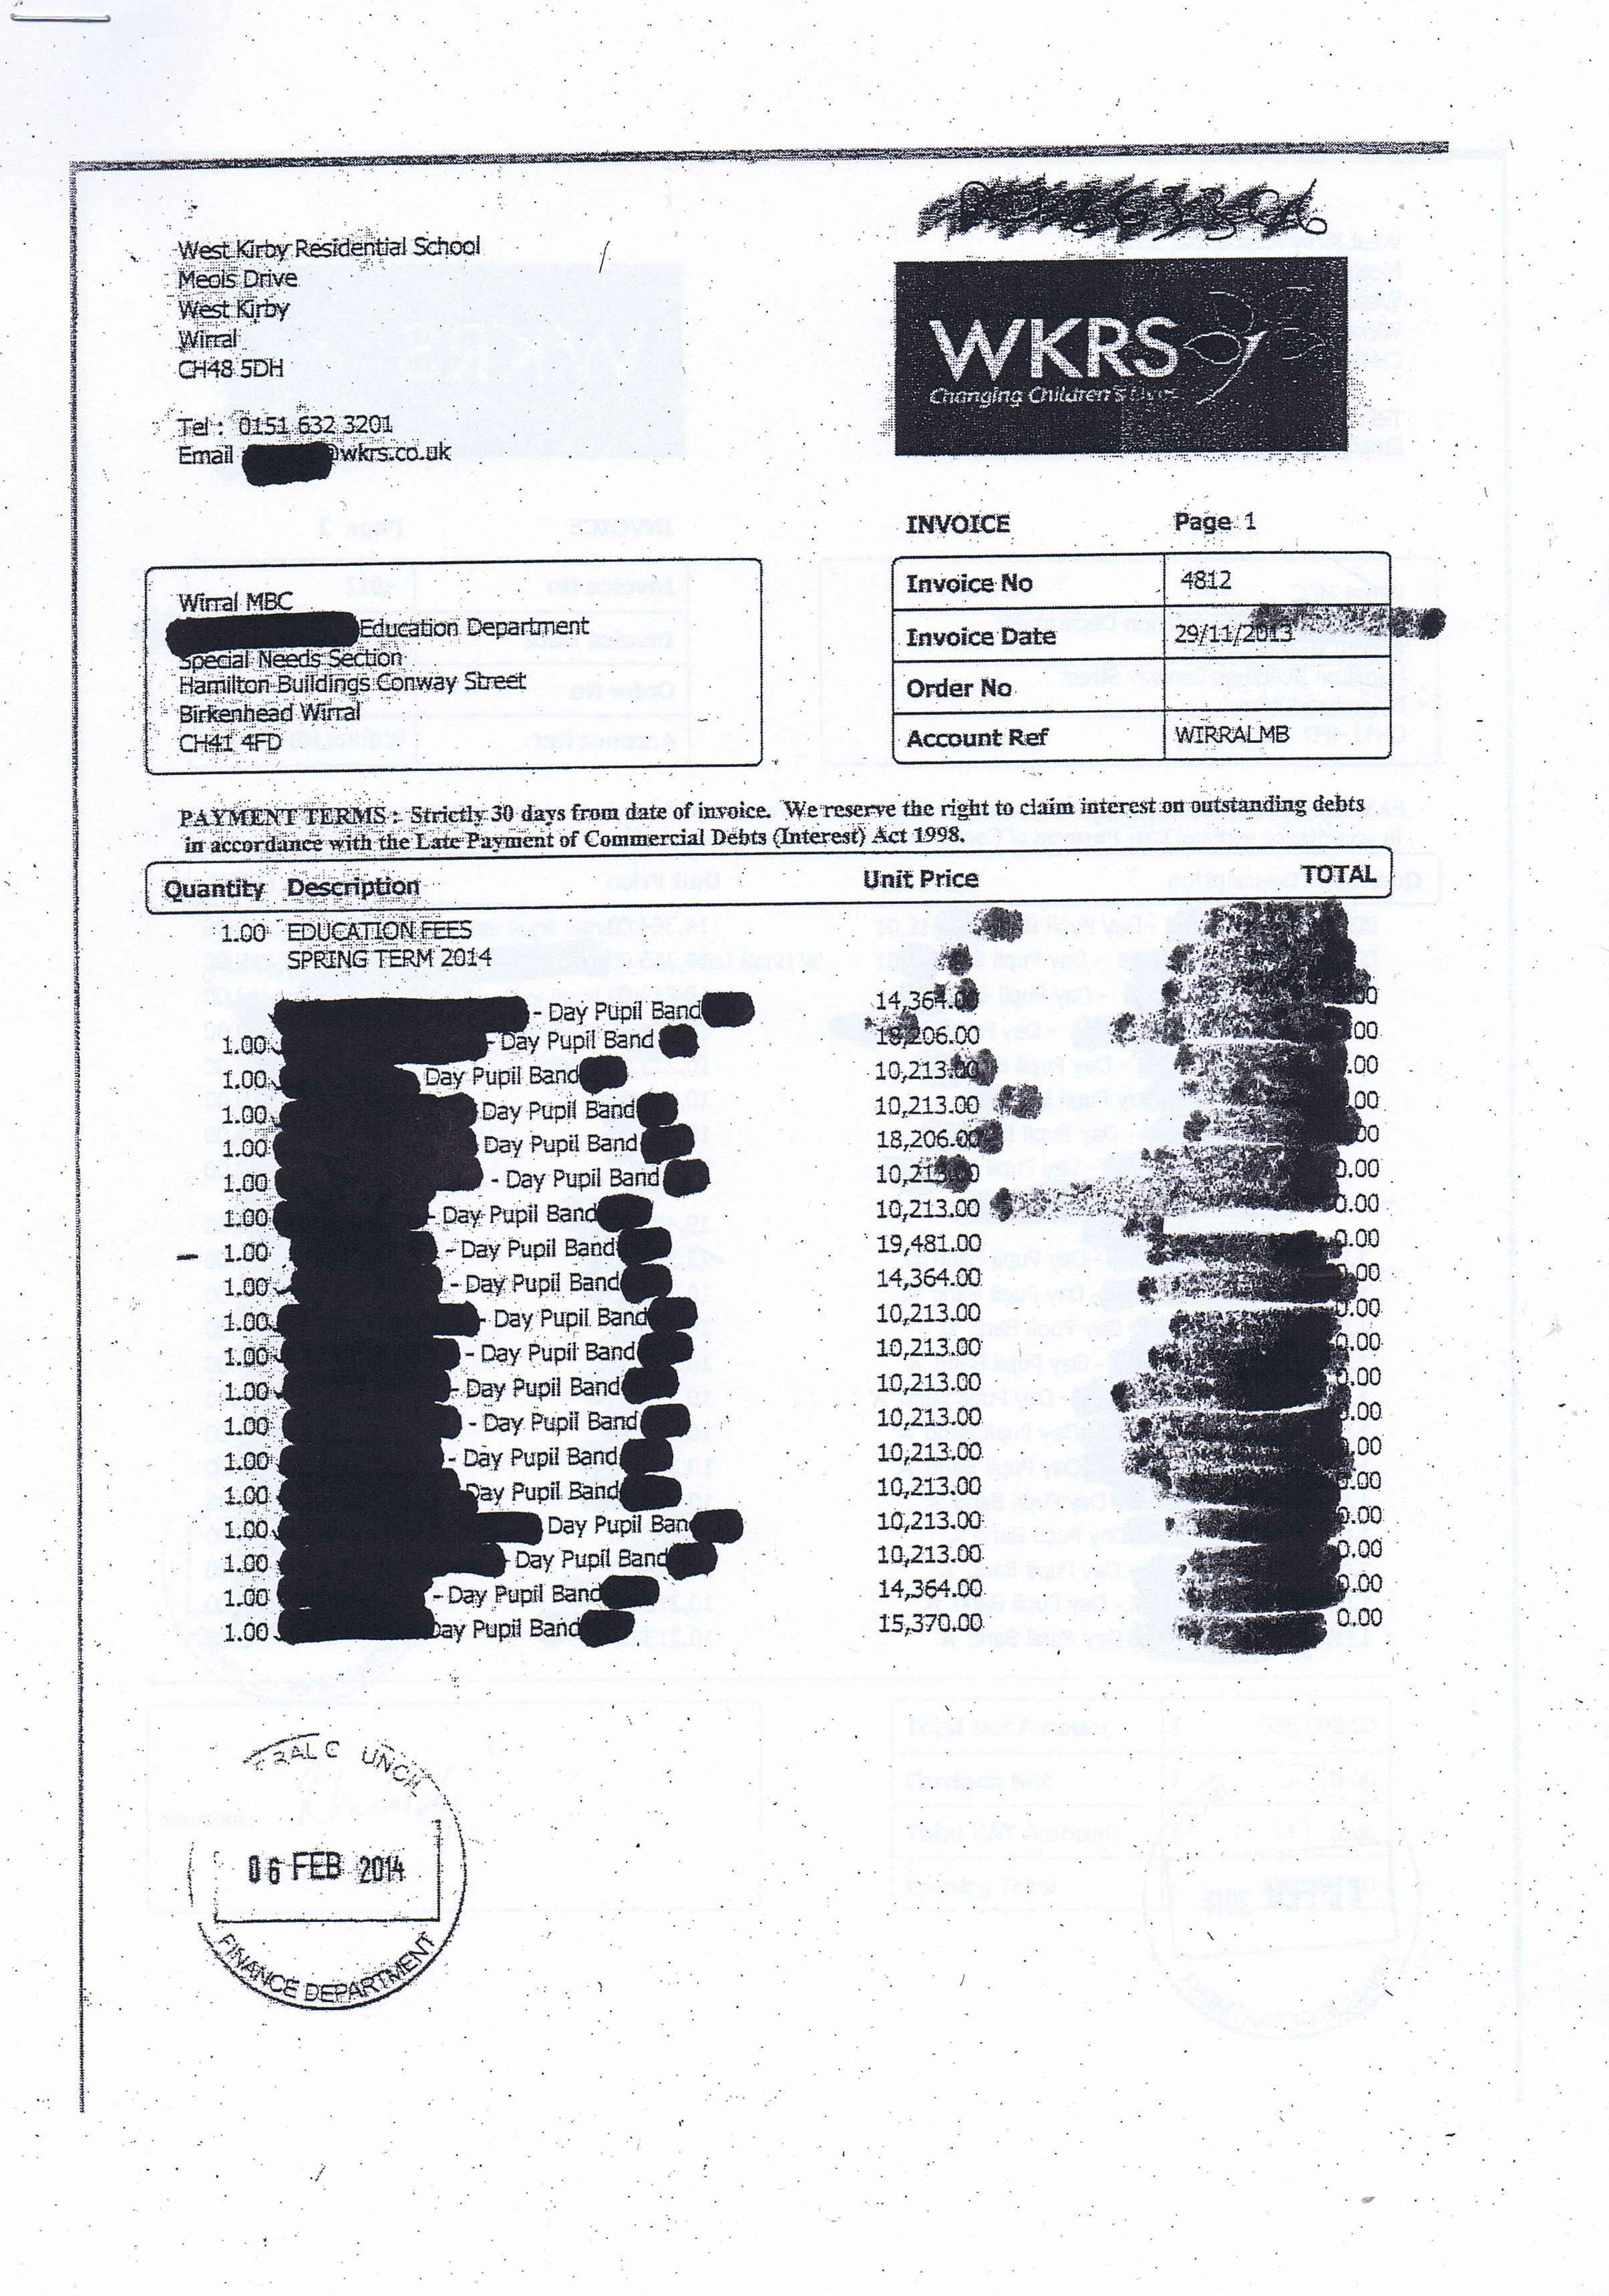 The £1,092,160.12 PFI invoice connected to Lyndale School